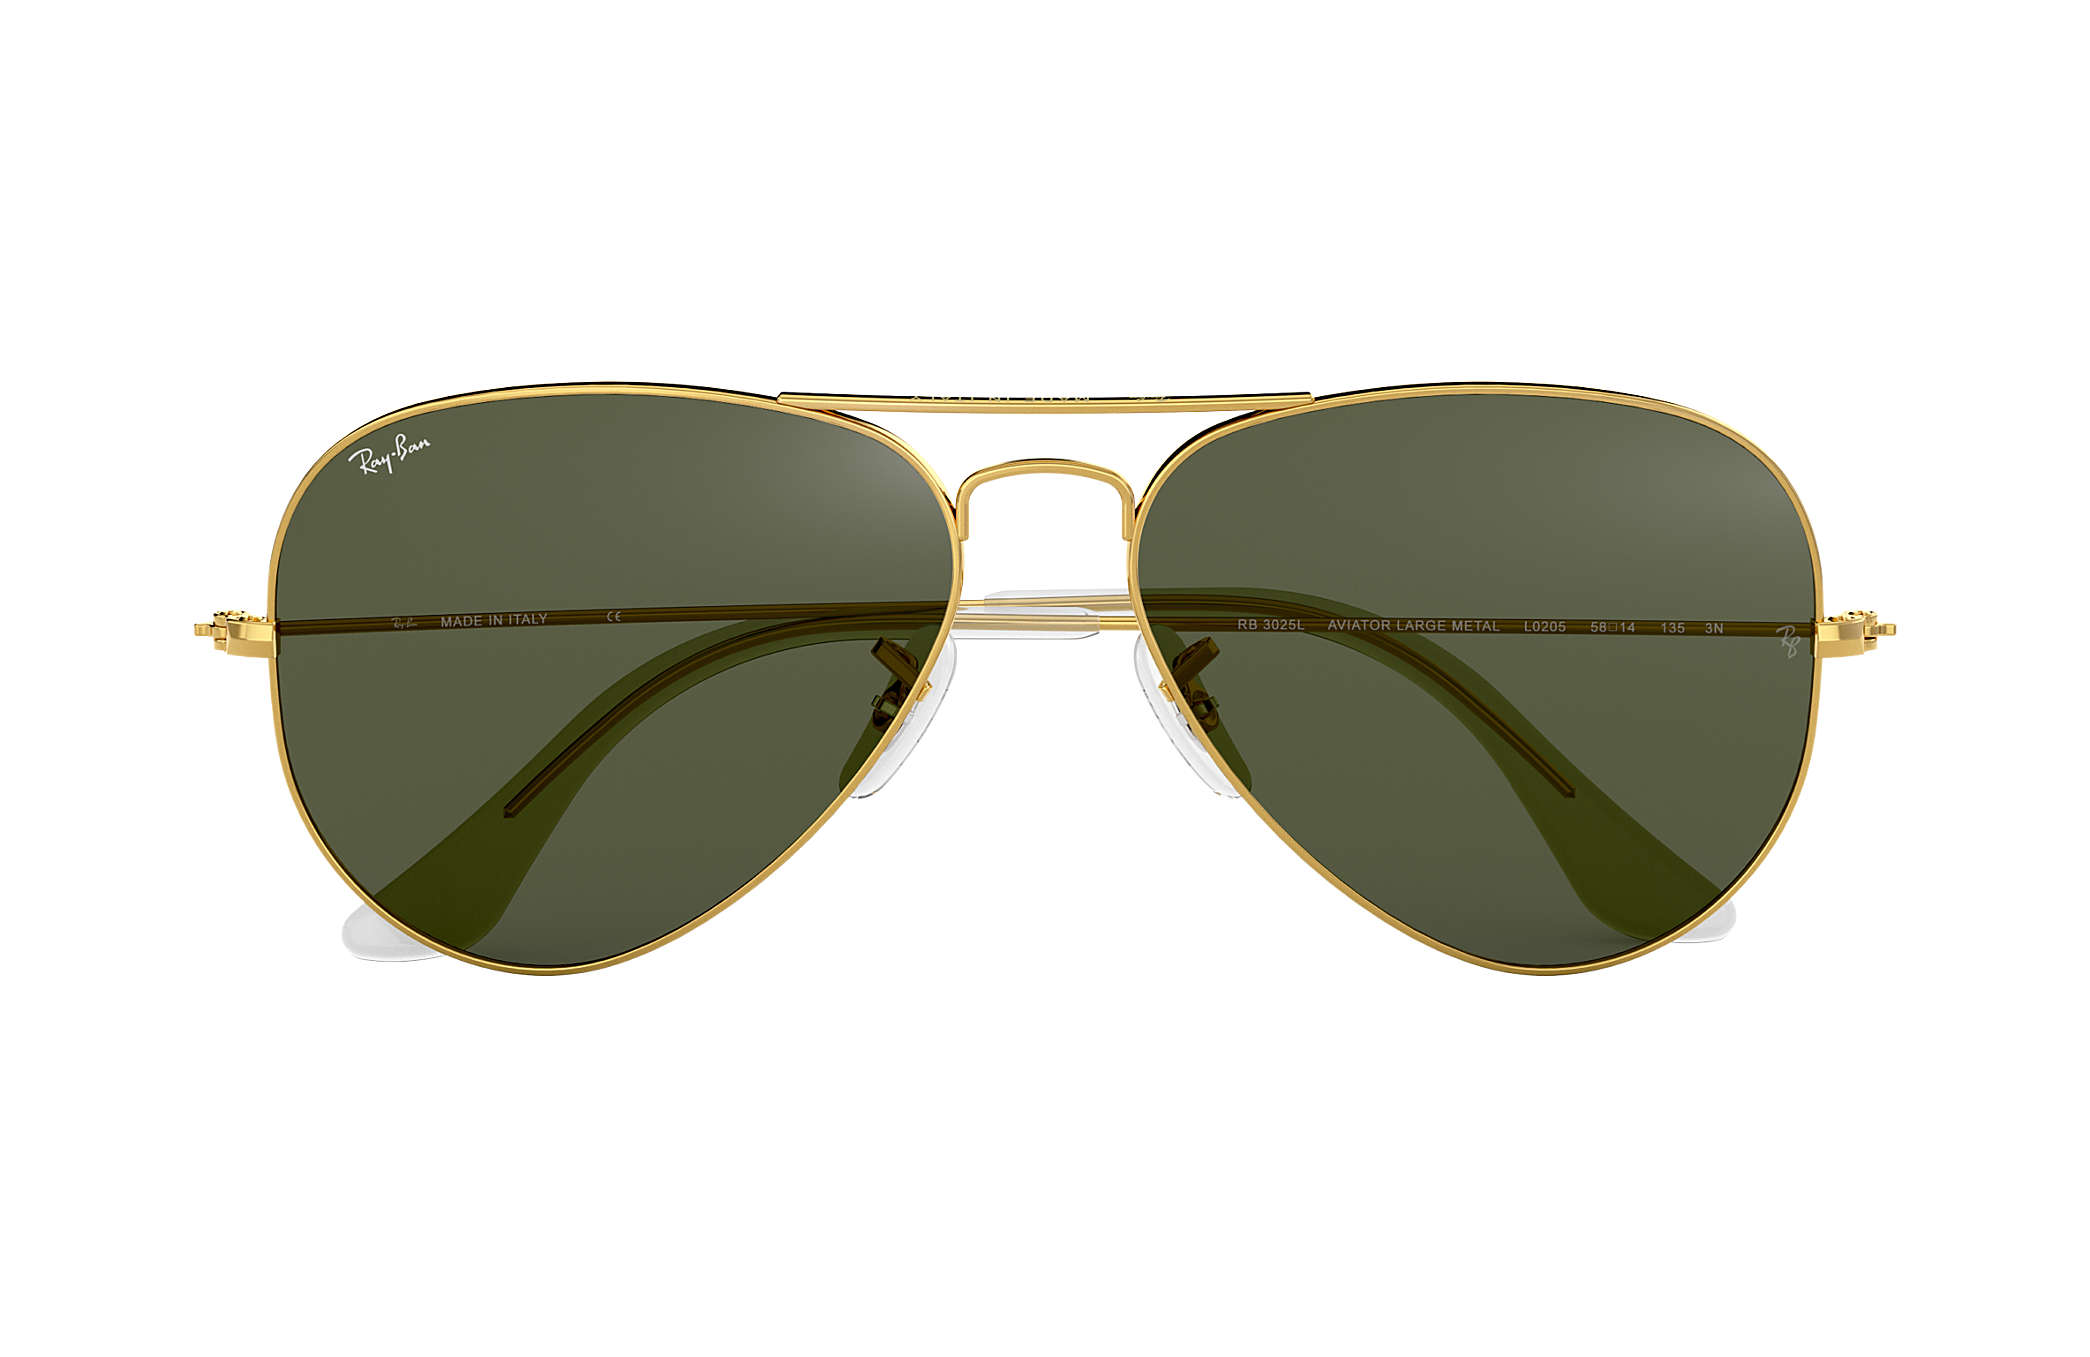 576e82342a9aa Ray-Ban Aviator Clássico RB3025L Ouro - Metal - Lentes Verde ...